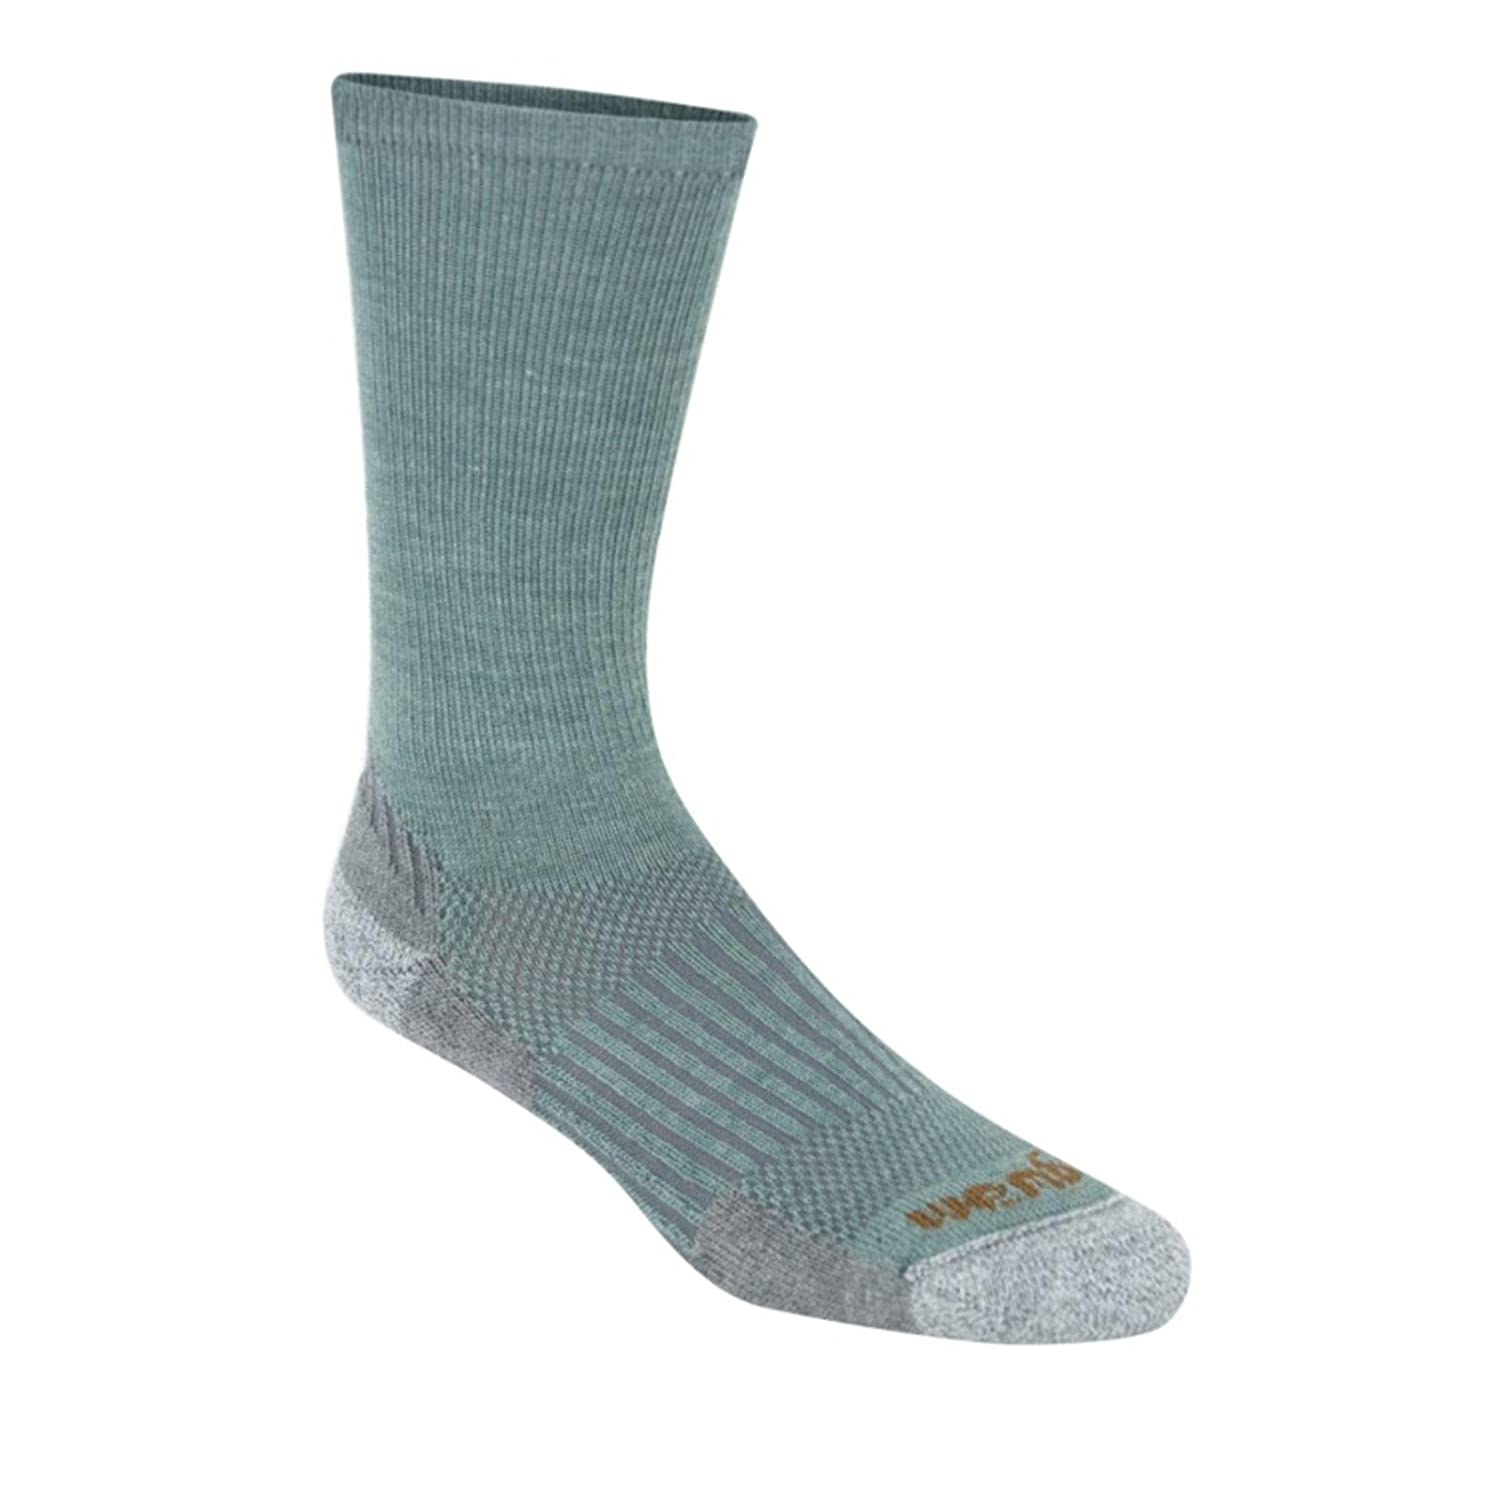 Merino Wool Coolmax socks